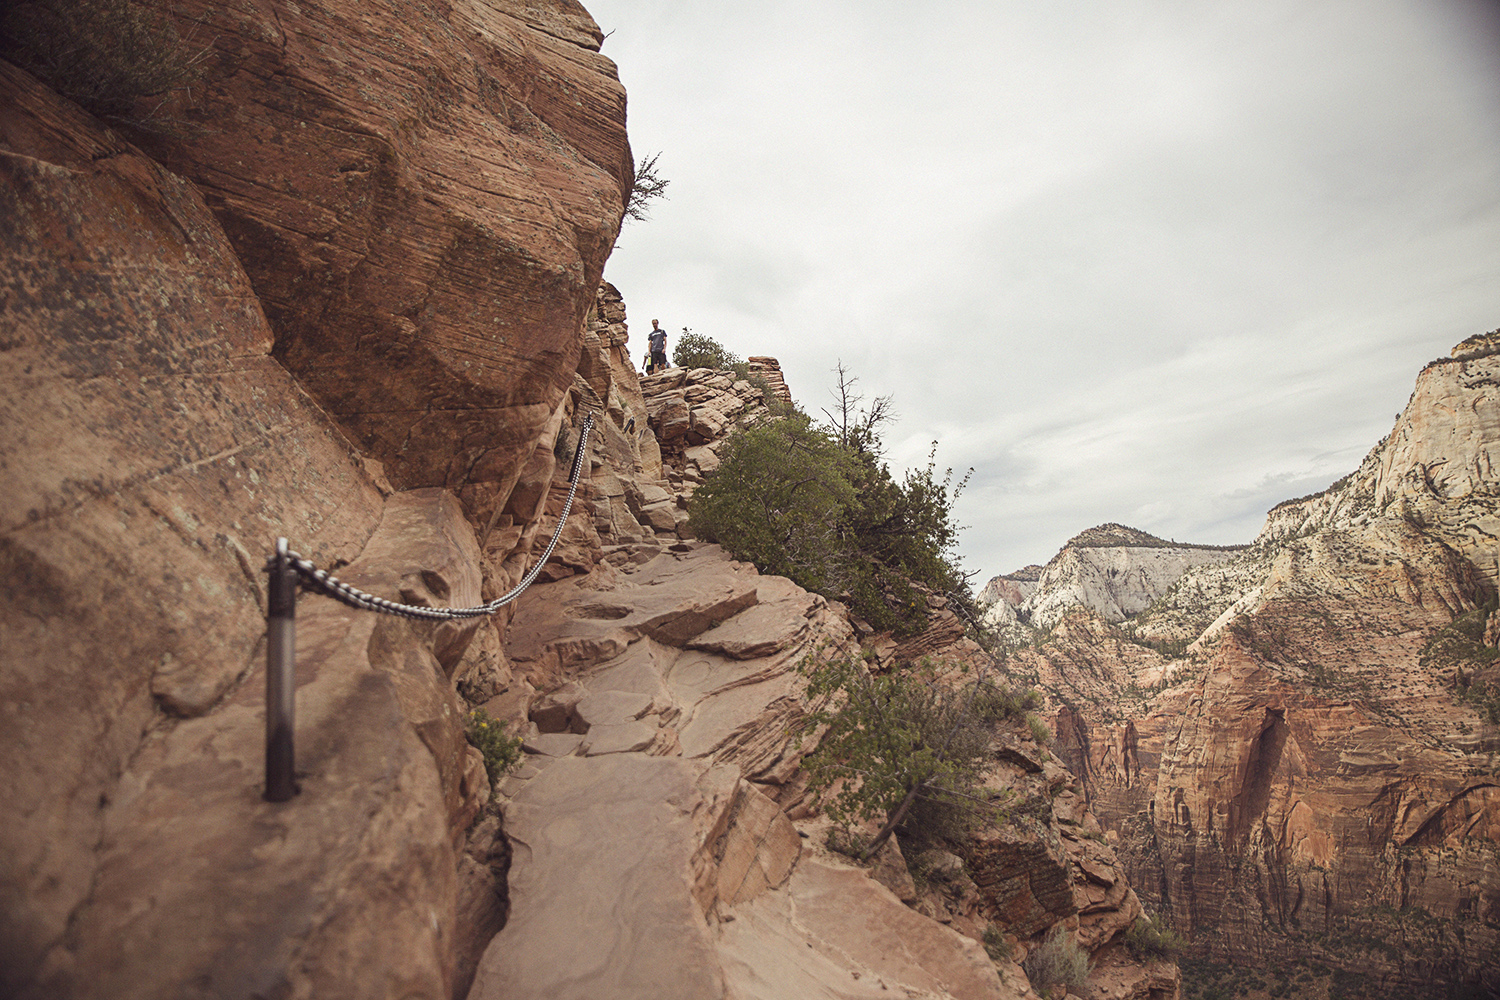 2017-06-08_Zion_Nationalpark_027.jpg